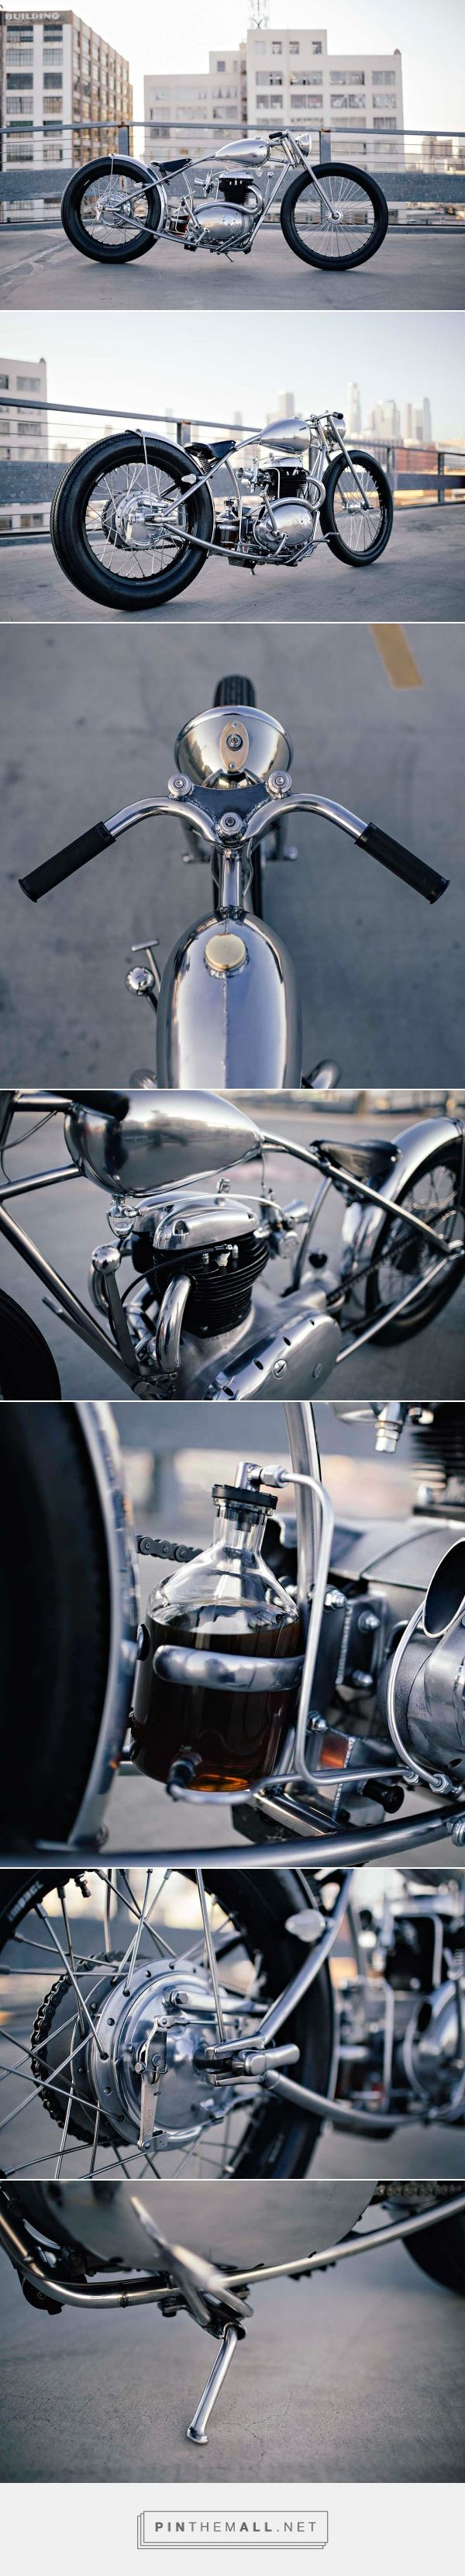 Custom BSA 500 by Maxwell Hazan